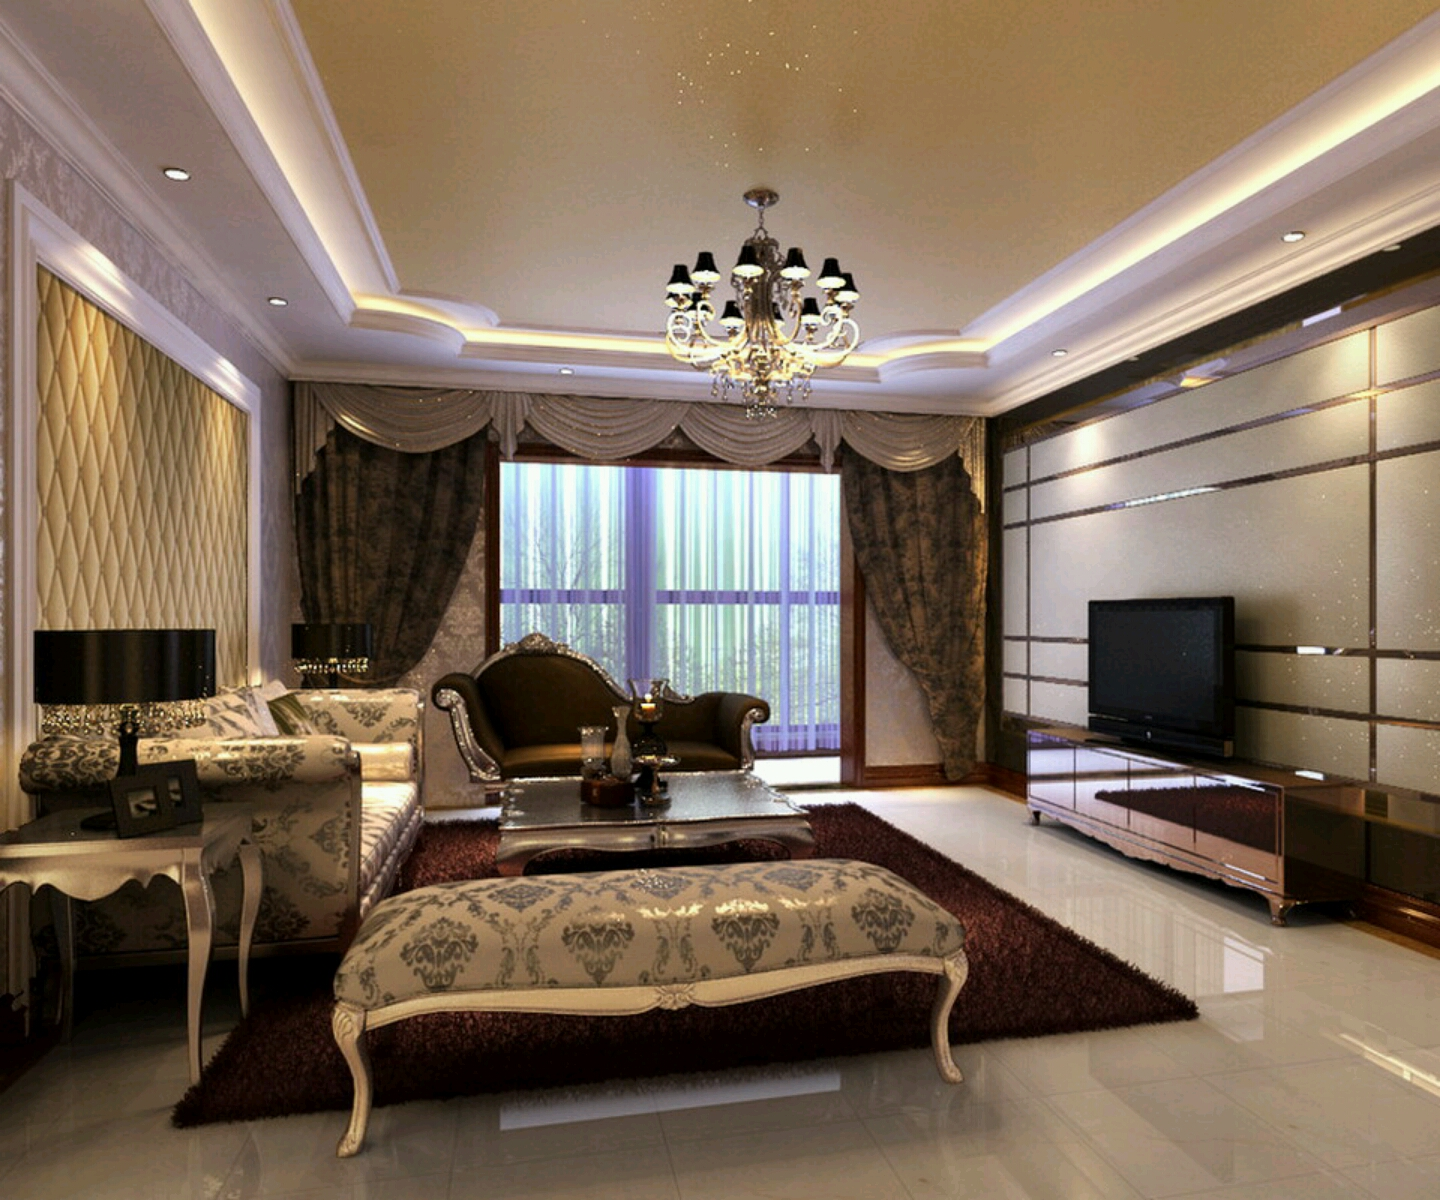 Interior decorating ideas living rooms dream house Interior home decoration